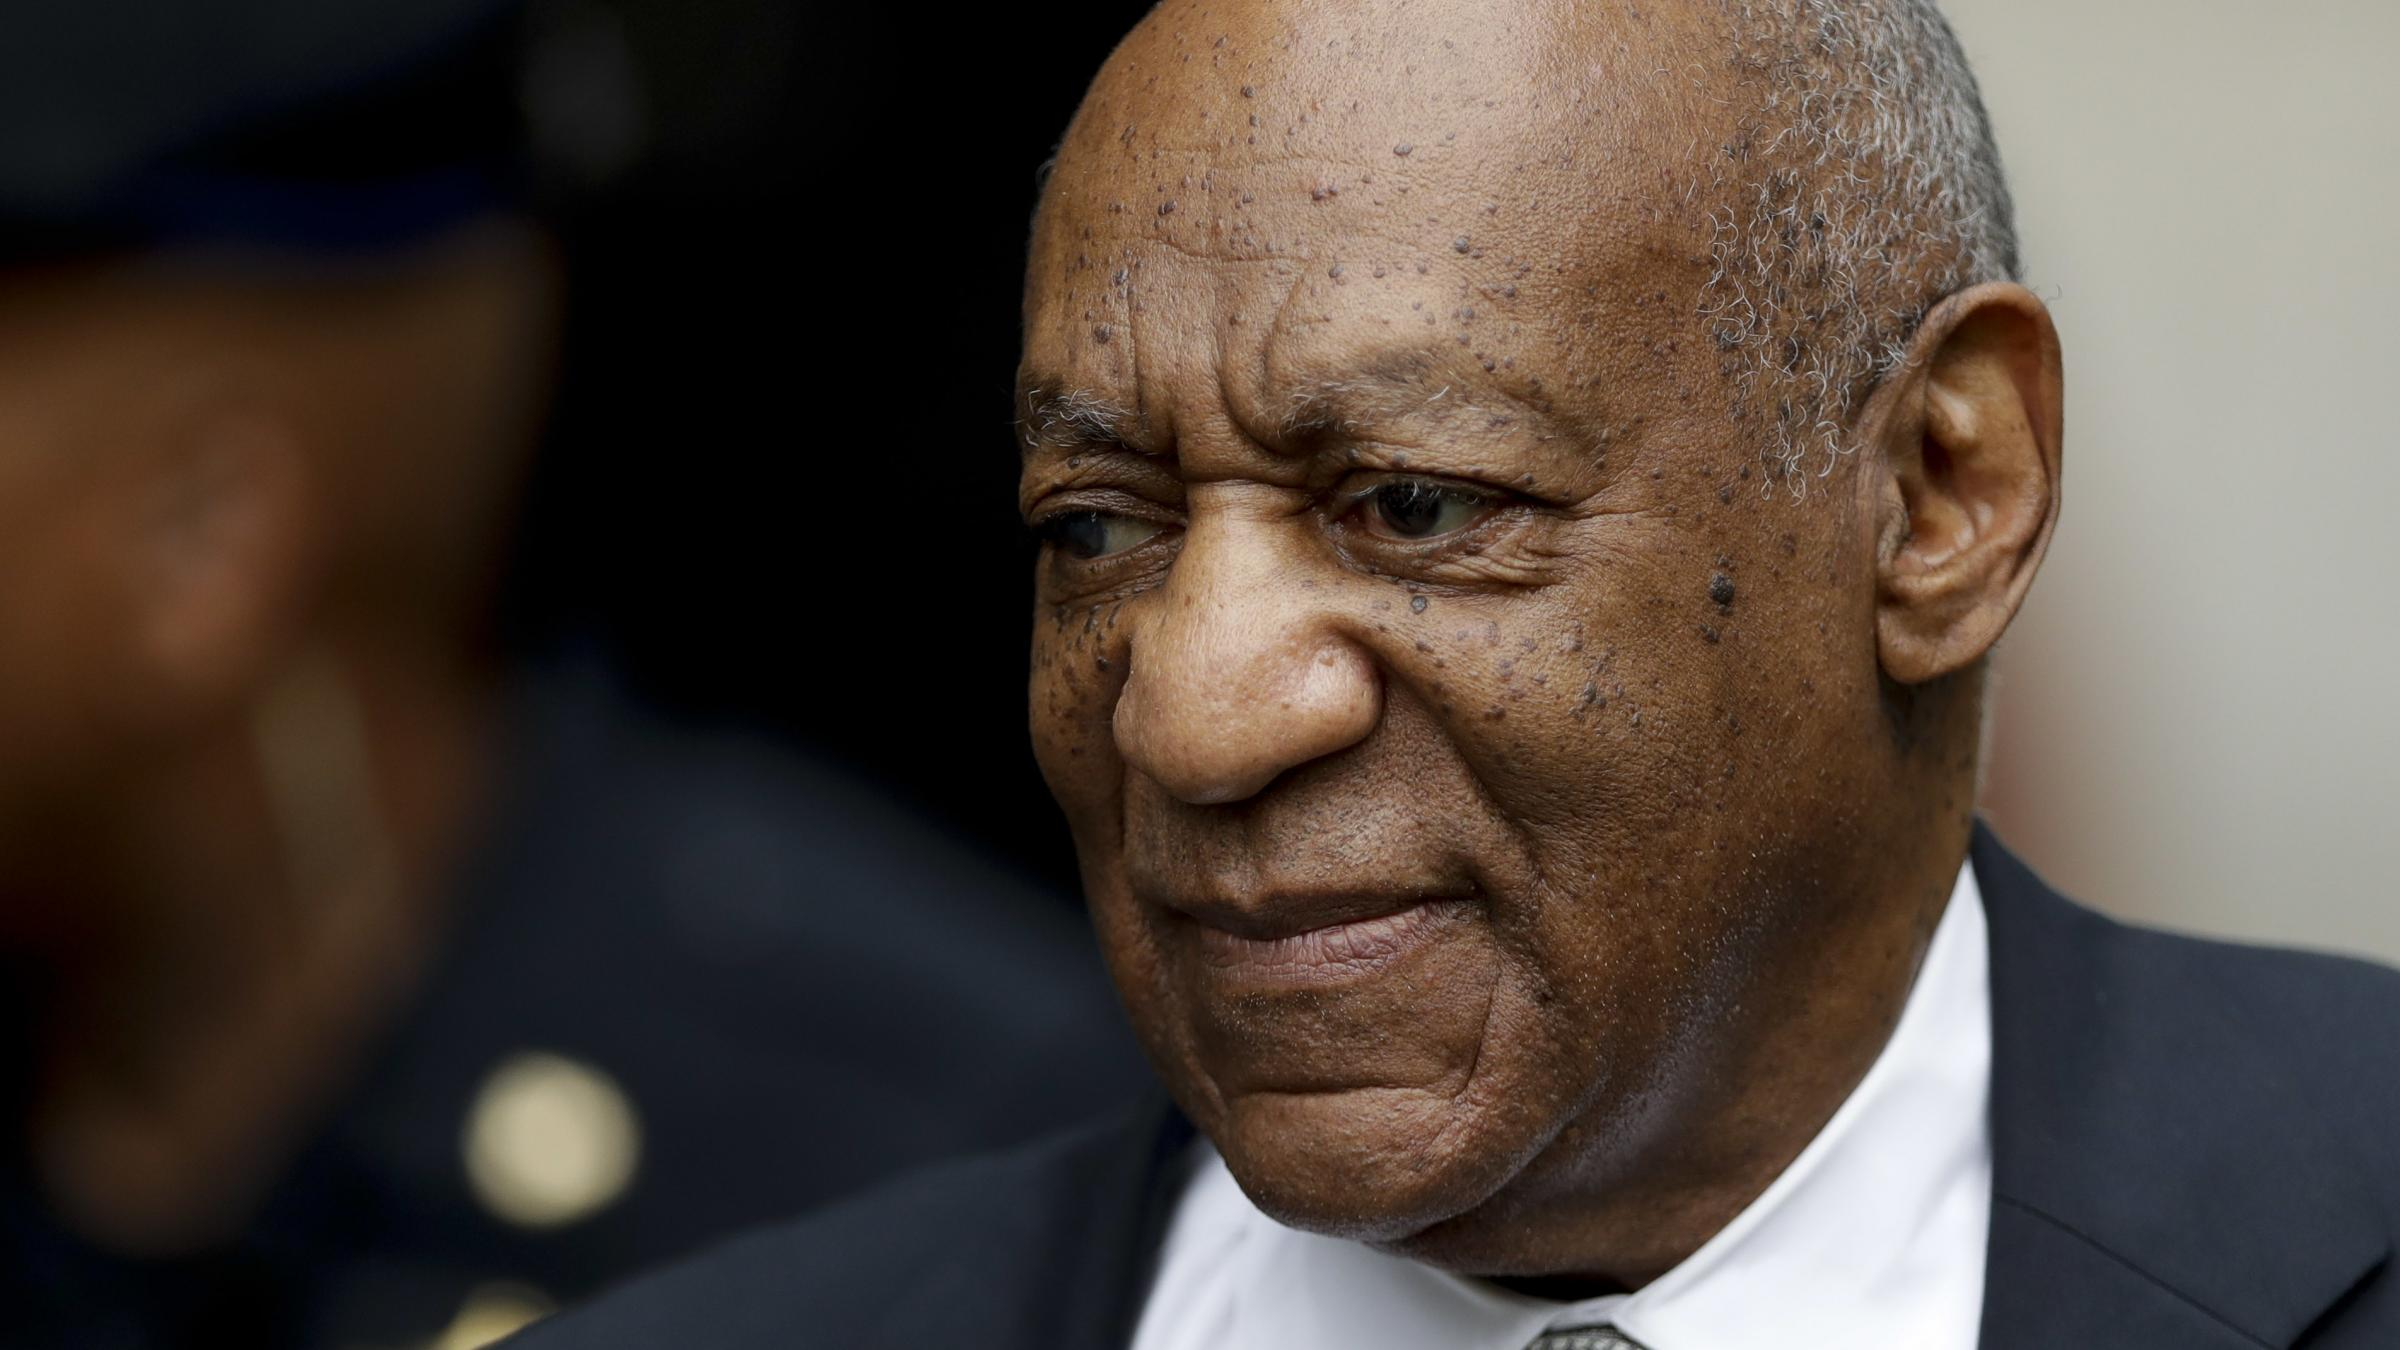 Mistrial declared in Bill Cosby case